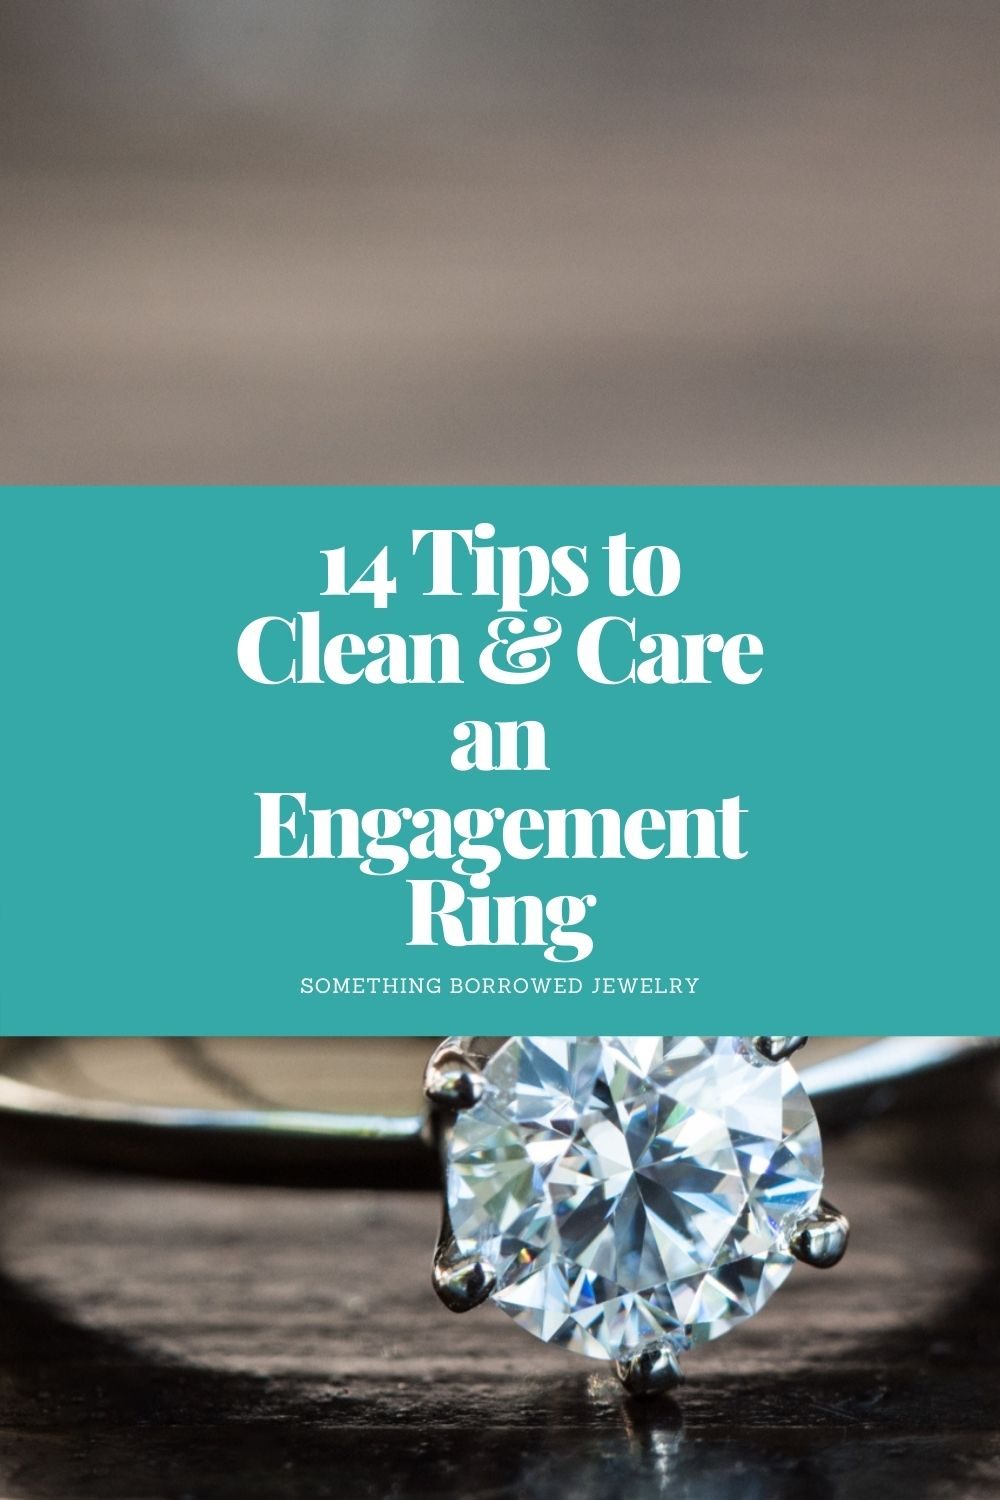 14 Tips to Clean & Care an Engagement Ring pin